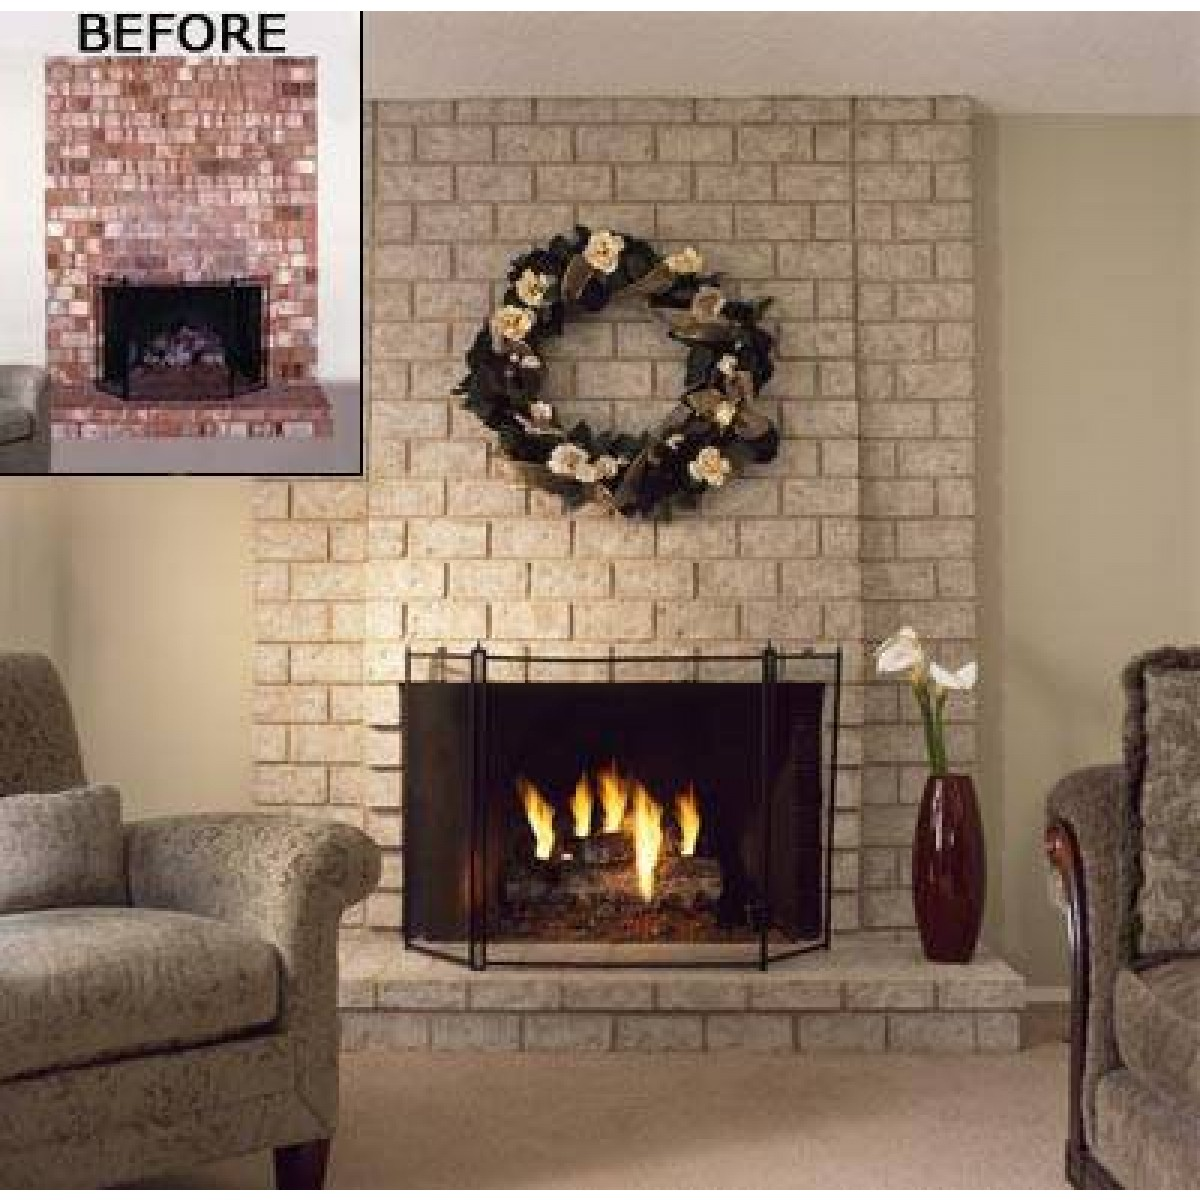 Fireplace painted with Brick Anew Paint Kit - Before & After